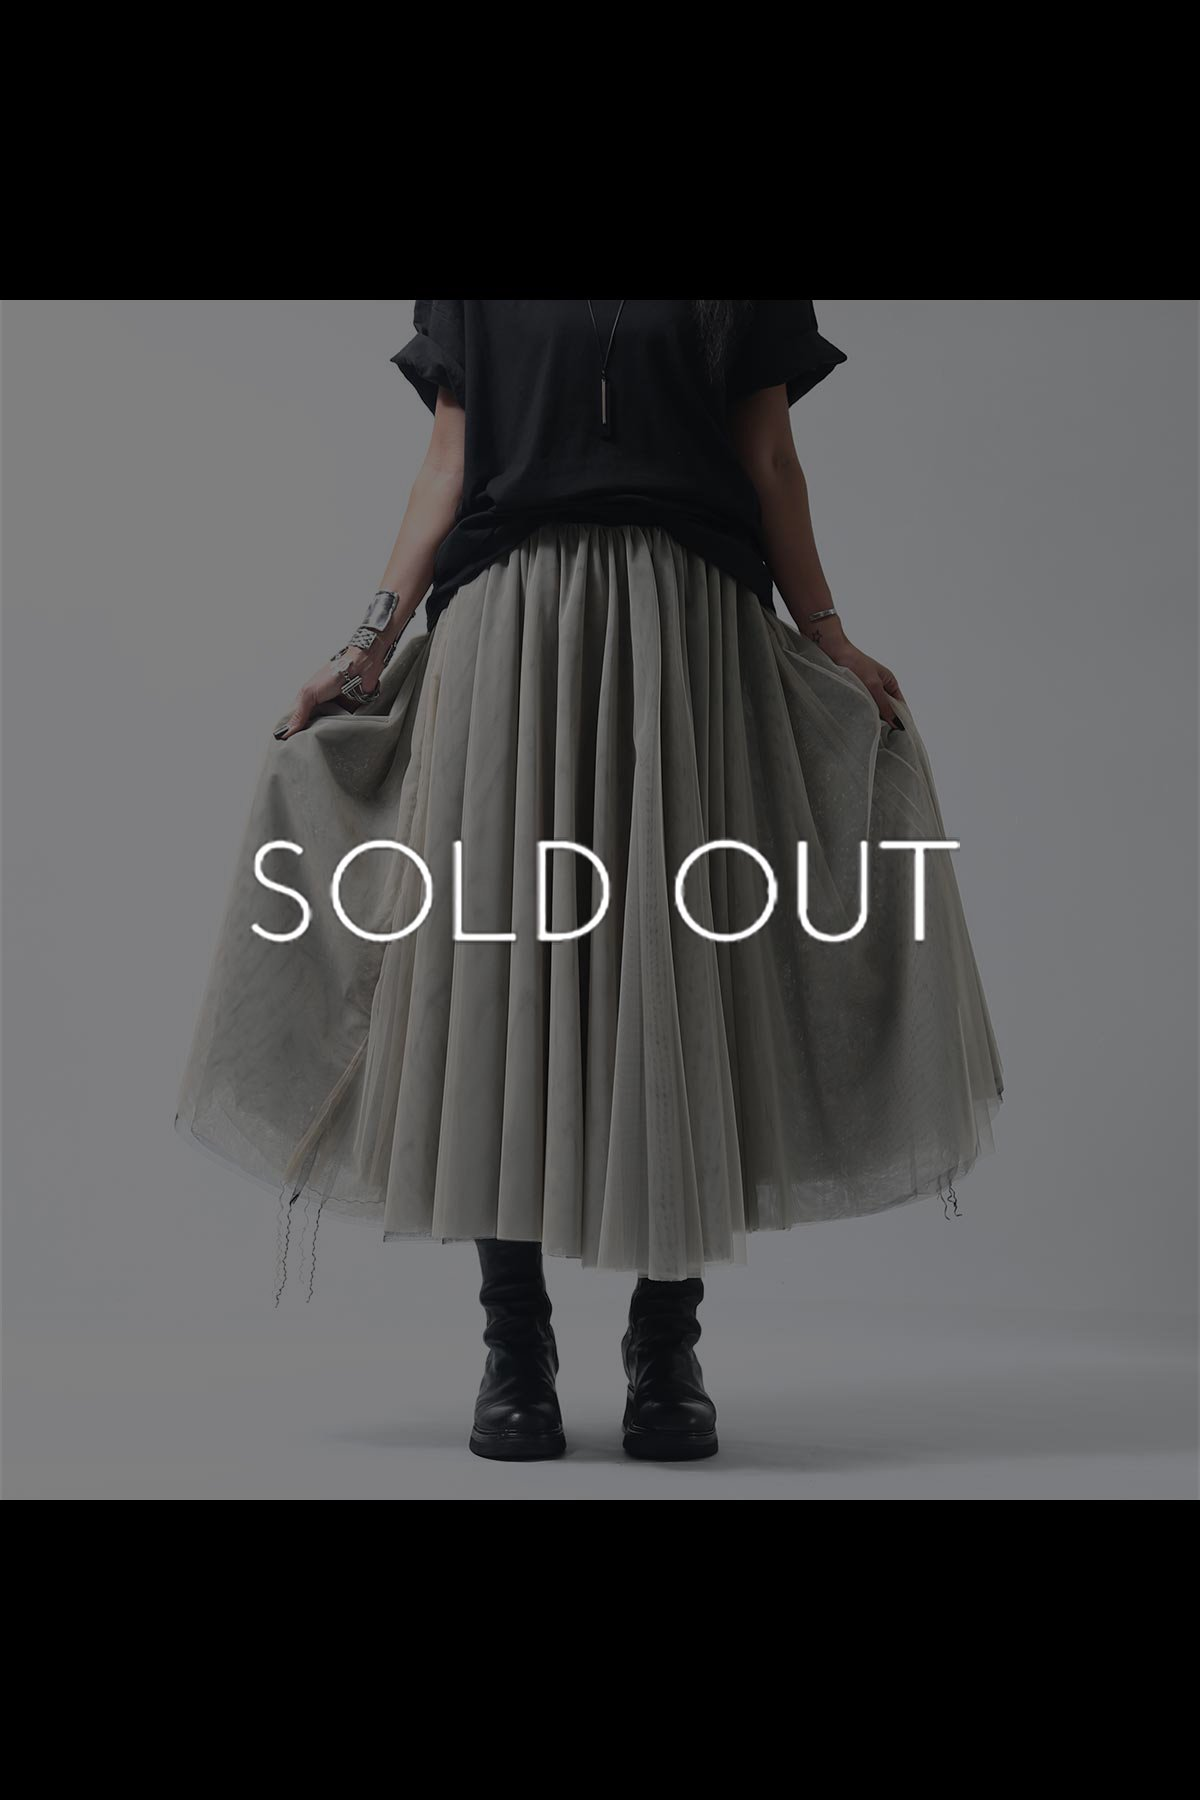 <img class='new_mark_img1' src='https://img.shop-pro.jp/img/new/icons8.gif' style='border:none;display:inline;margin:0px;padding:0px;width:auto;' />REVERSIBLE TULLE SKIRT K57_BLACK/BEIGE